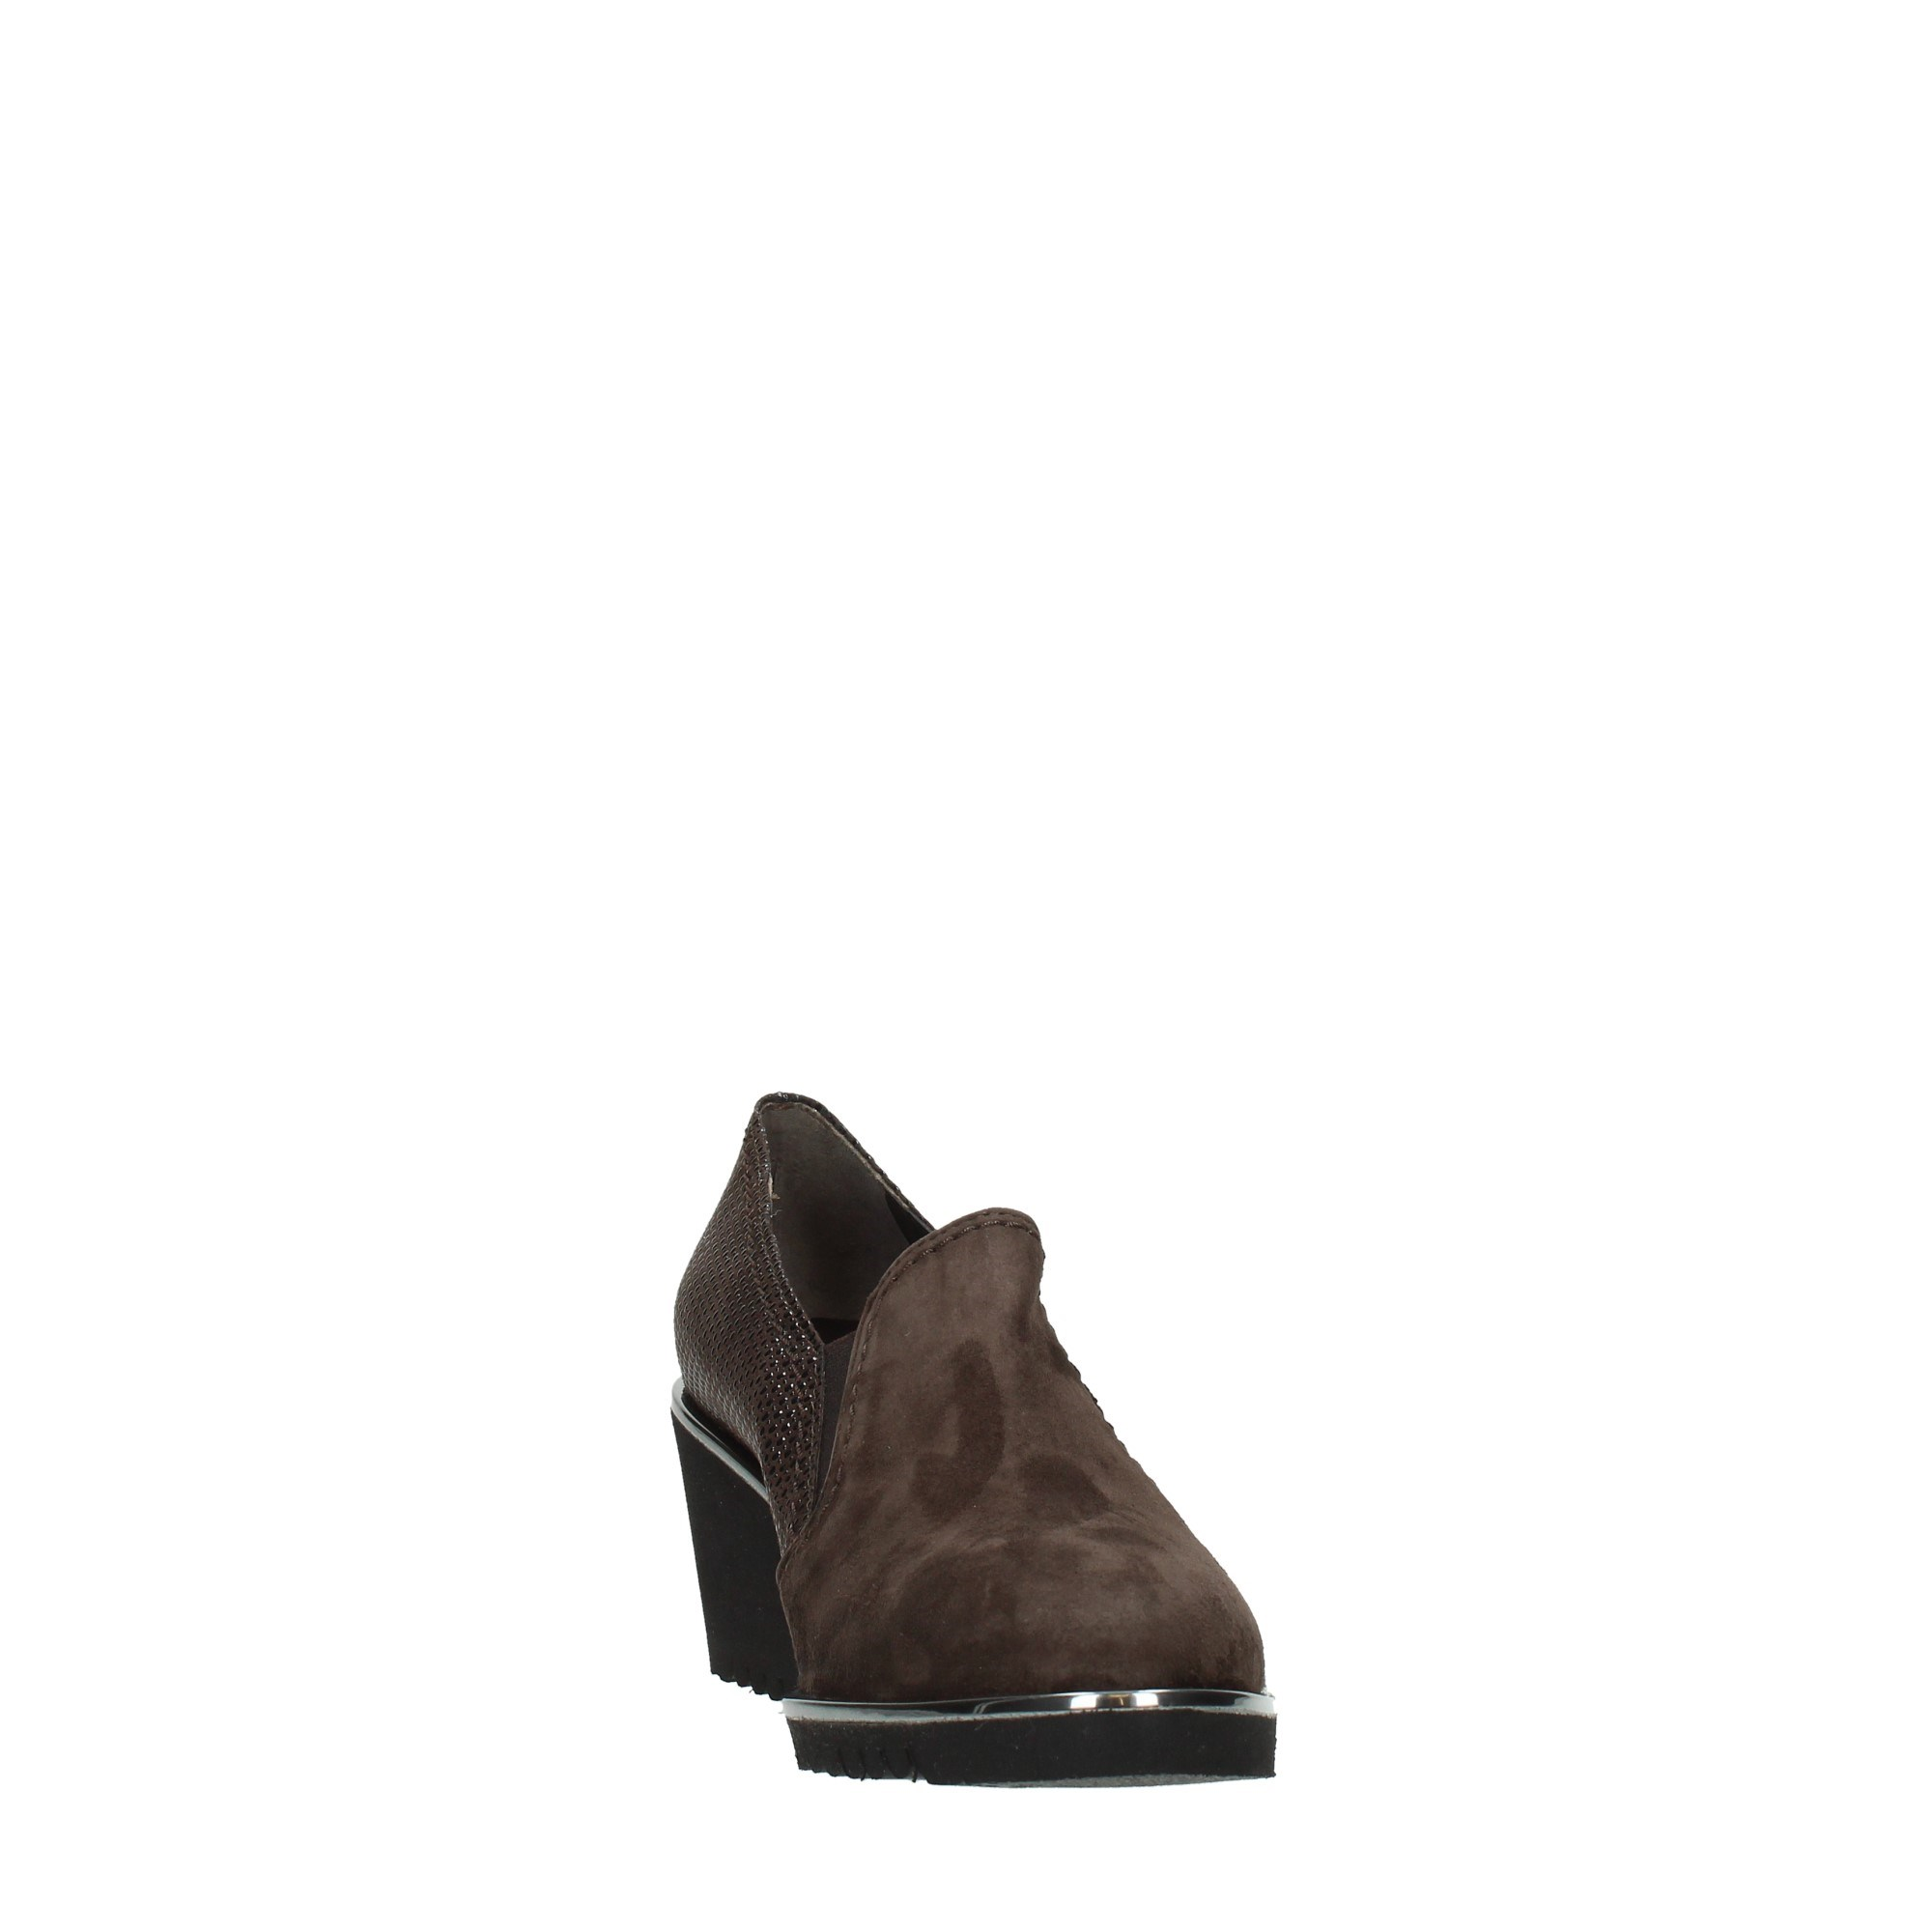 Daniela Rossi Shoes Women Classic Shoes Brown 12220